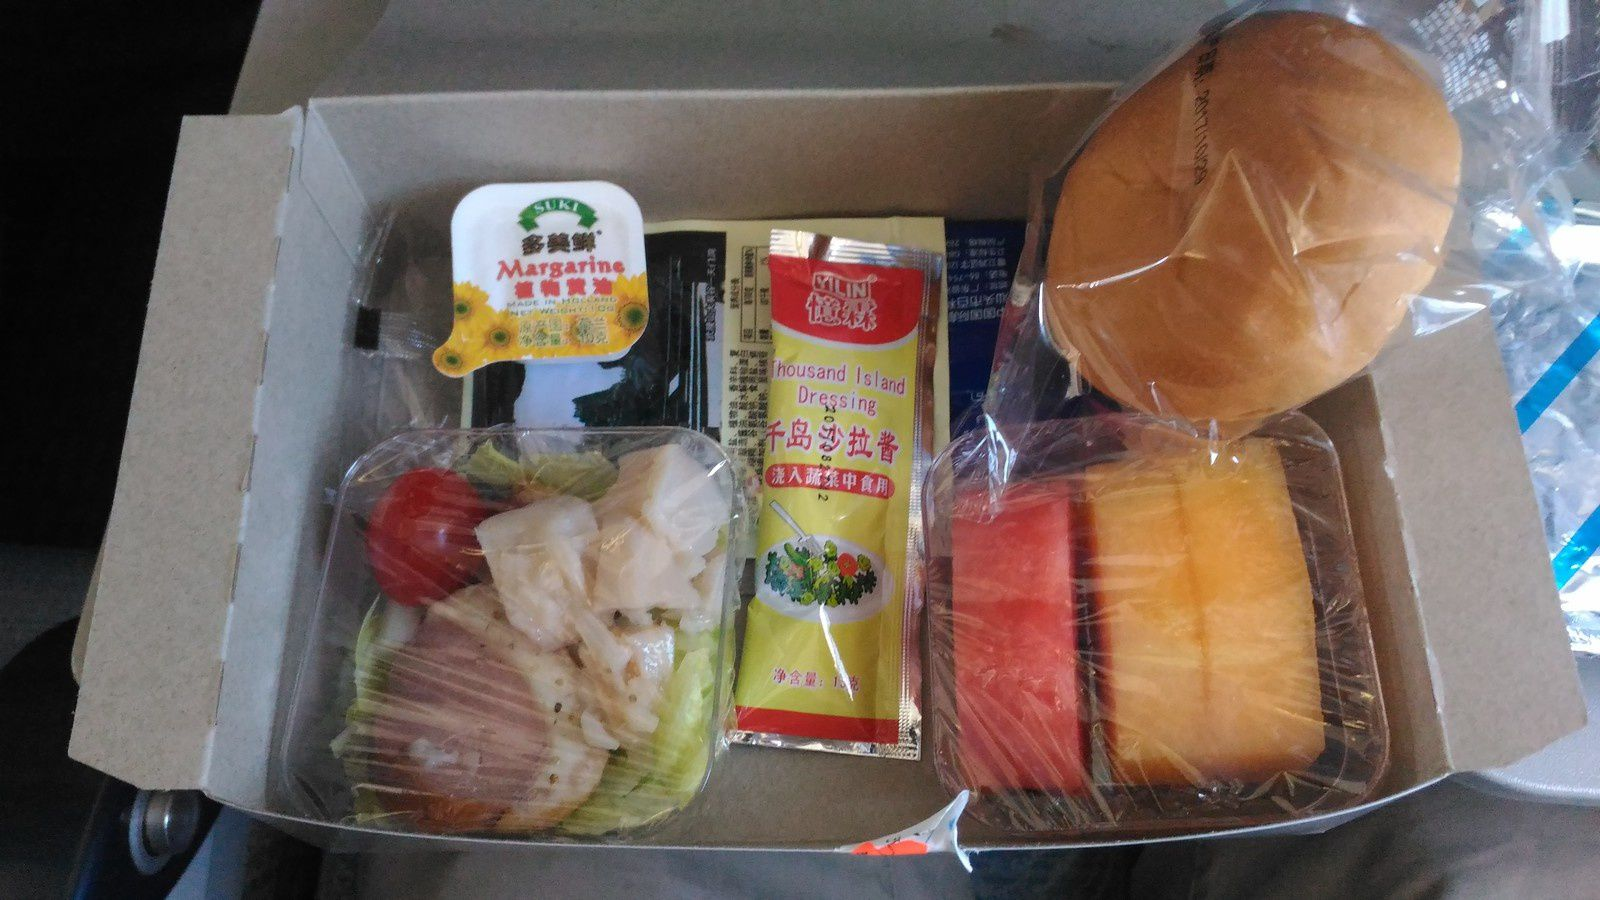 suite du plateau repas d'air china